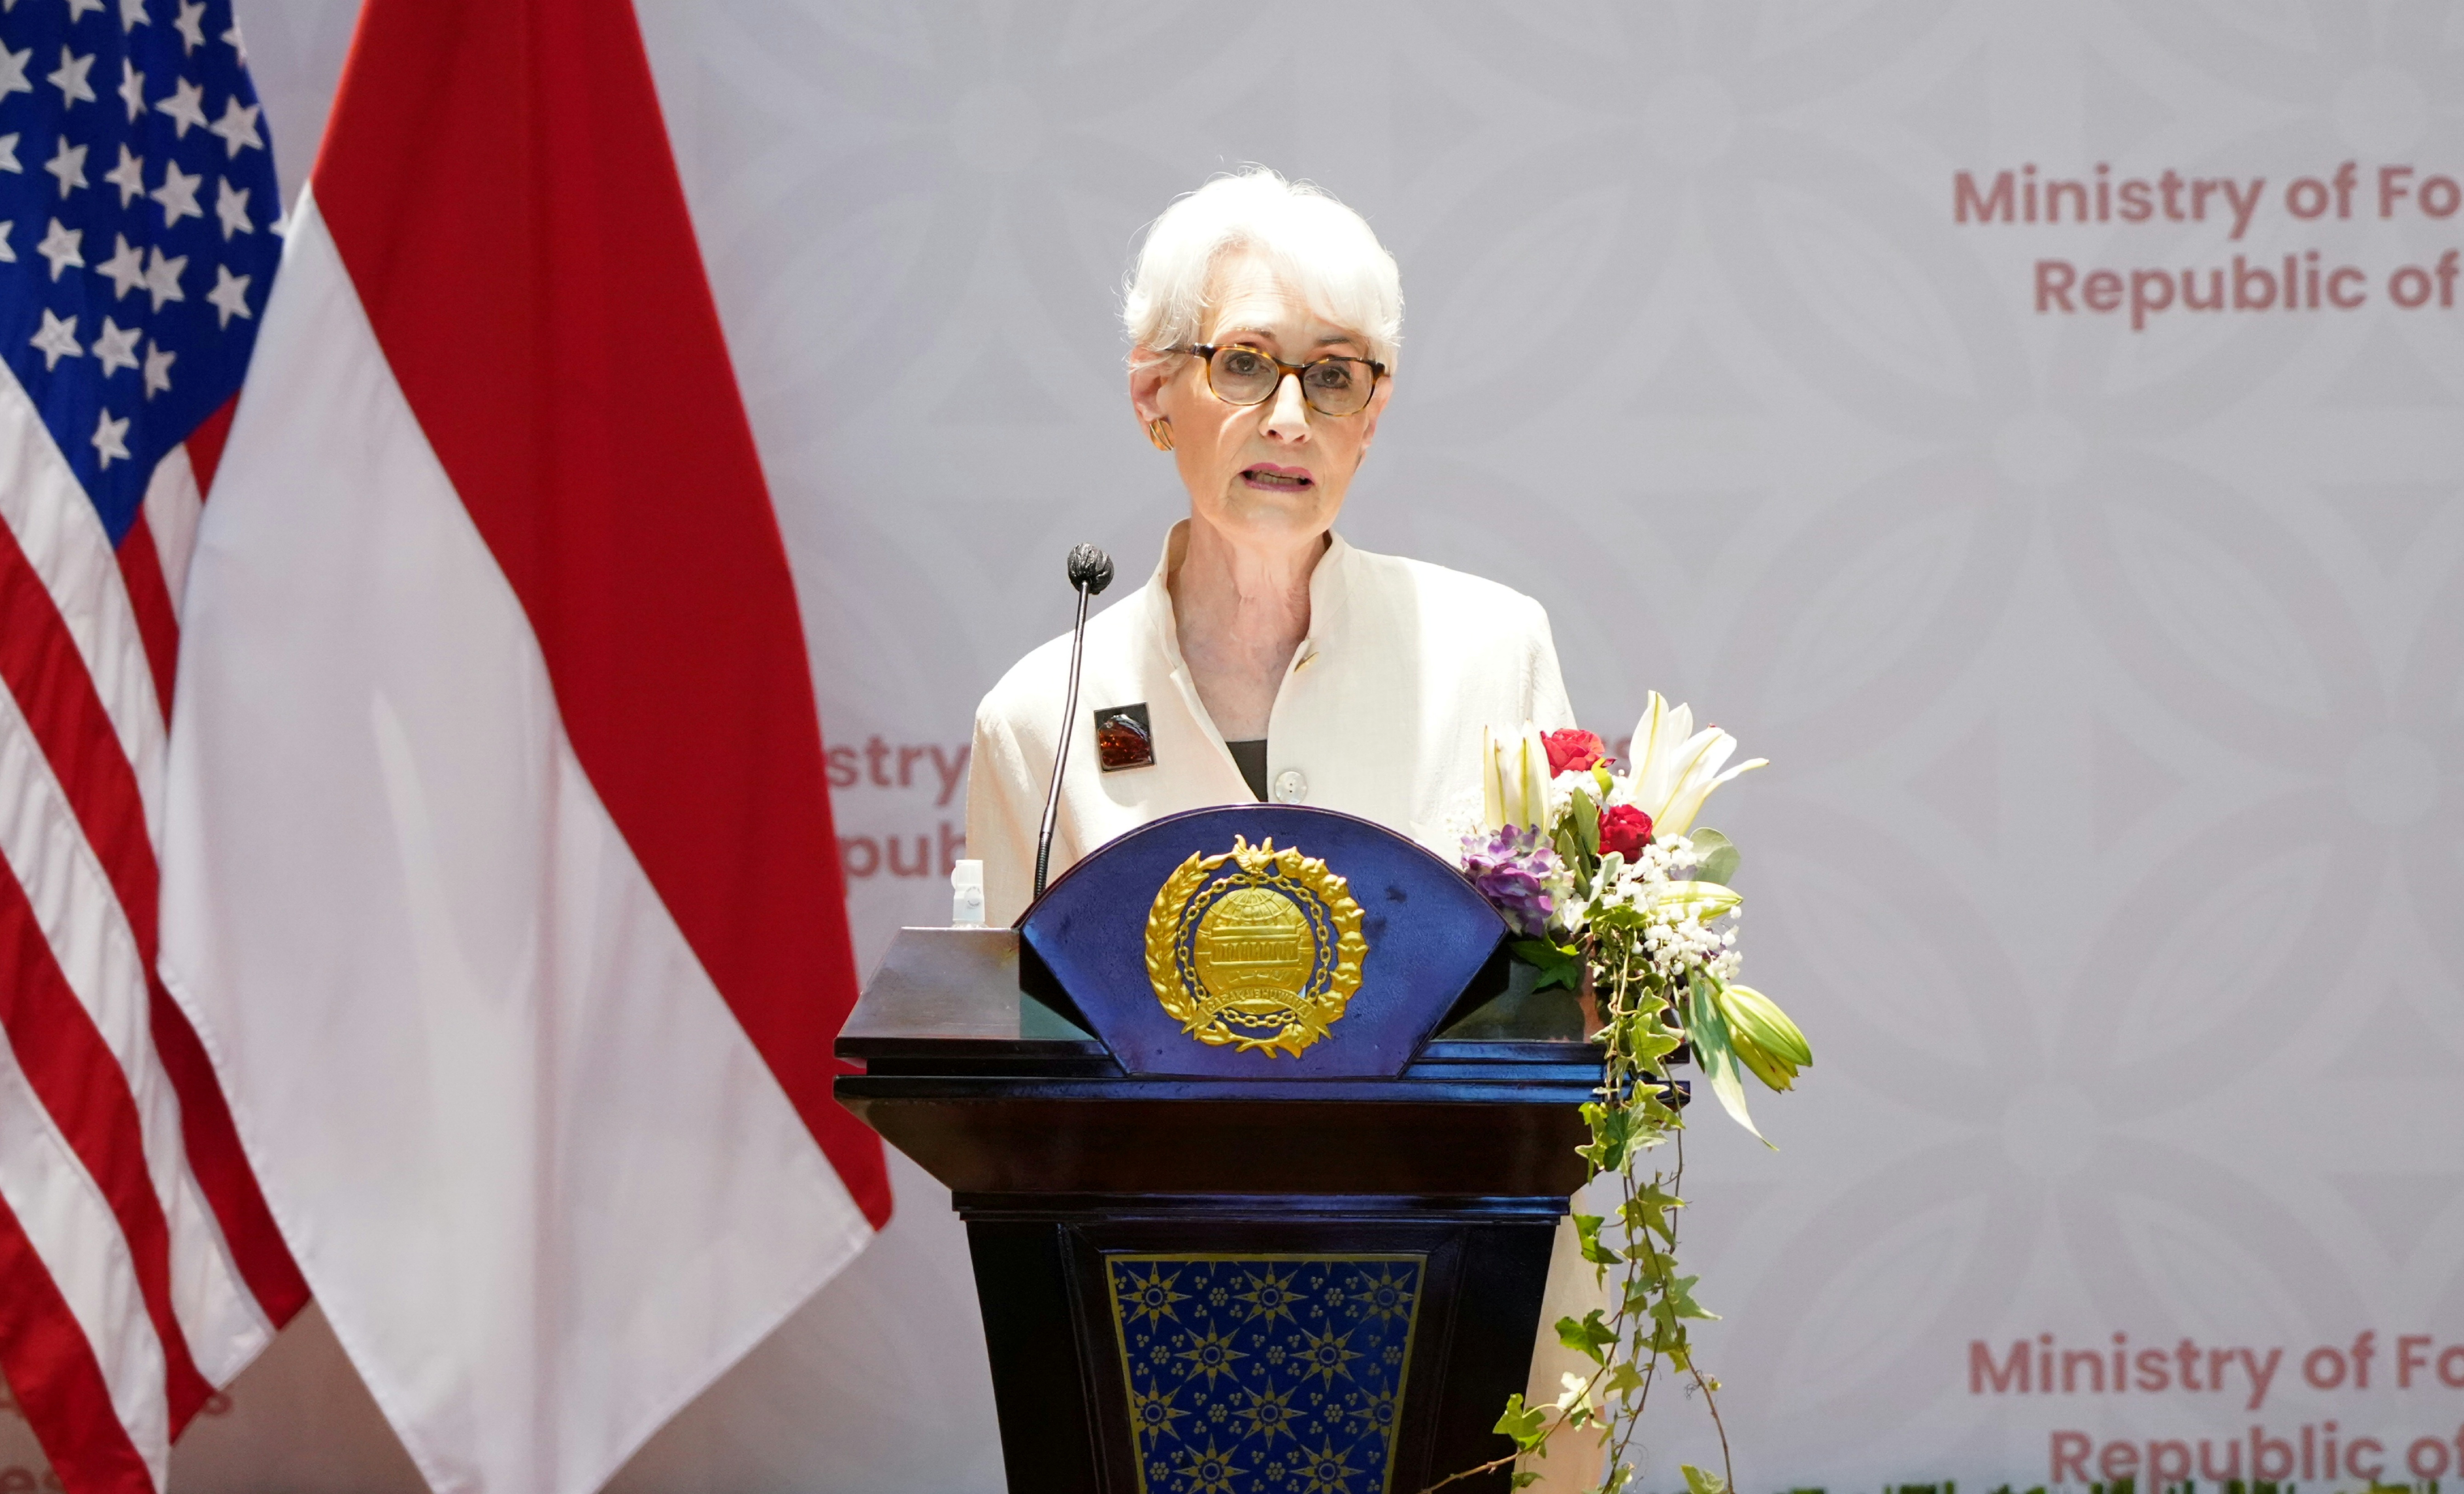 U.S. Deputy Secretary of State Wendy Sherman speaks during a press briefing with Indonesian Deputy Foreign Minister Mahendra Siregar following their meeting in Jakarta, Indonesia, May 31, 2021. Courtesy of Okta/Indonesia's Ministry of Foreign Affairs/Handout via REUTERS